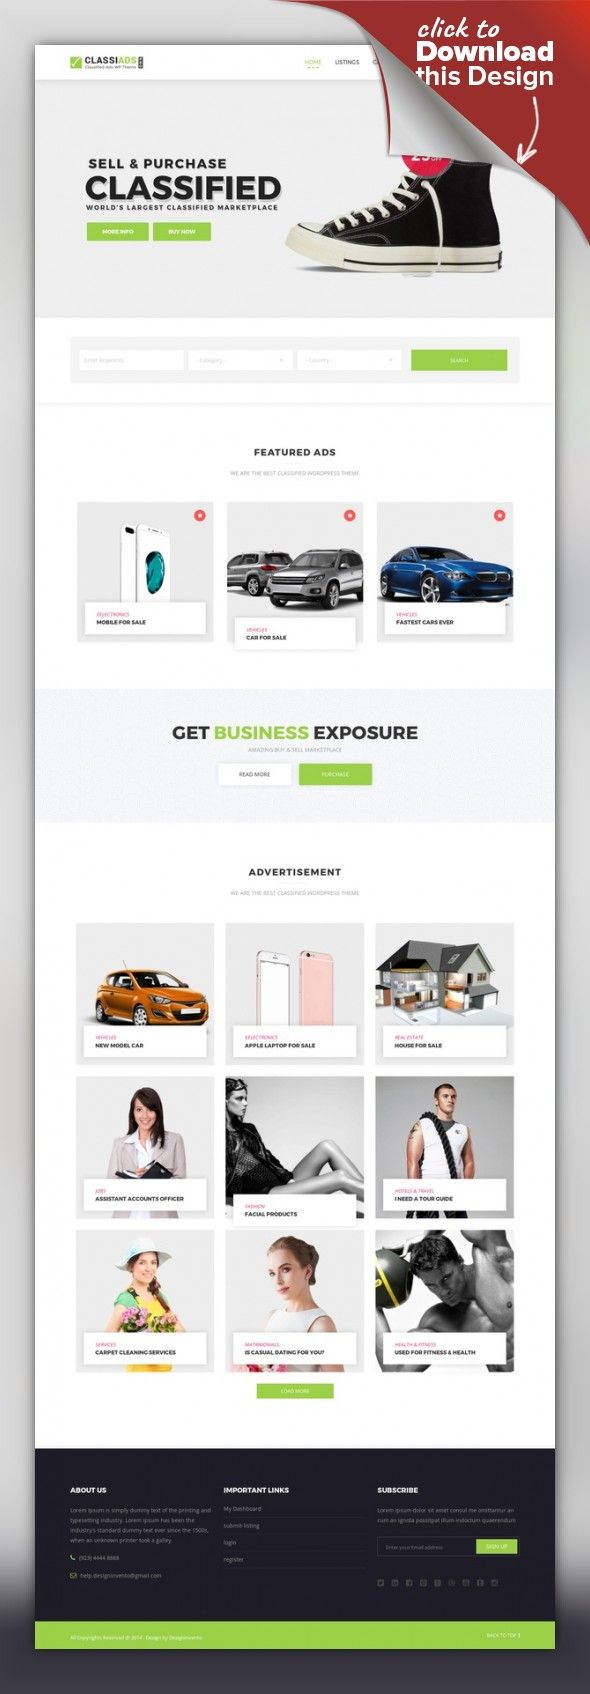 Classiads - Classified Ads WordPress Theme ads, advertise, advertising, bbpress, business, classified, classified ads, corporate, database, directory, jobs, listing, local, marketing, portal Classiads – Classified ads Wordpress theme The ClassiAds is all time #1 Premium Classified Ads WordPress Theme on Themeforest. We know its a perfect choice for your business. Super flexible, Ri...